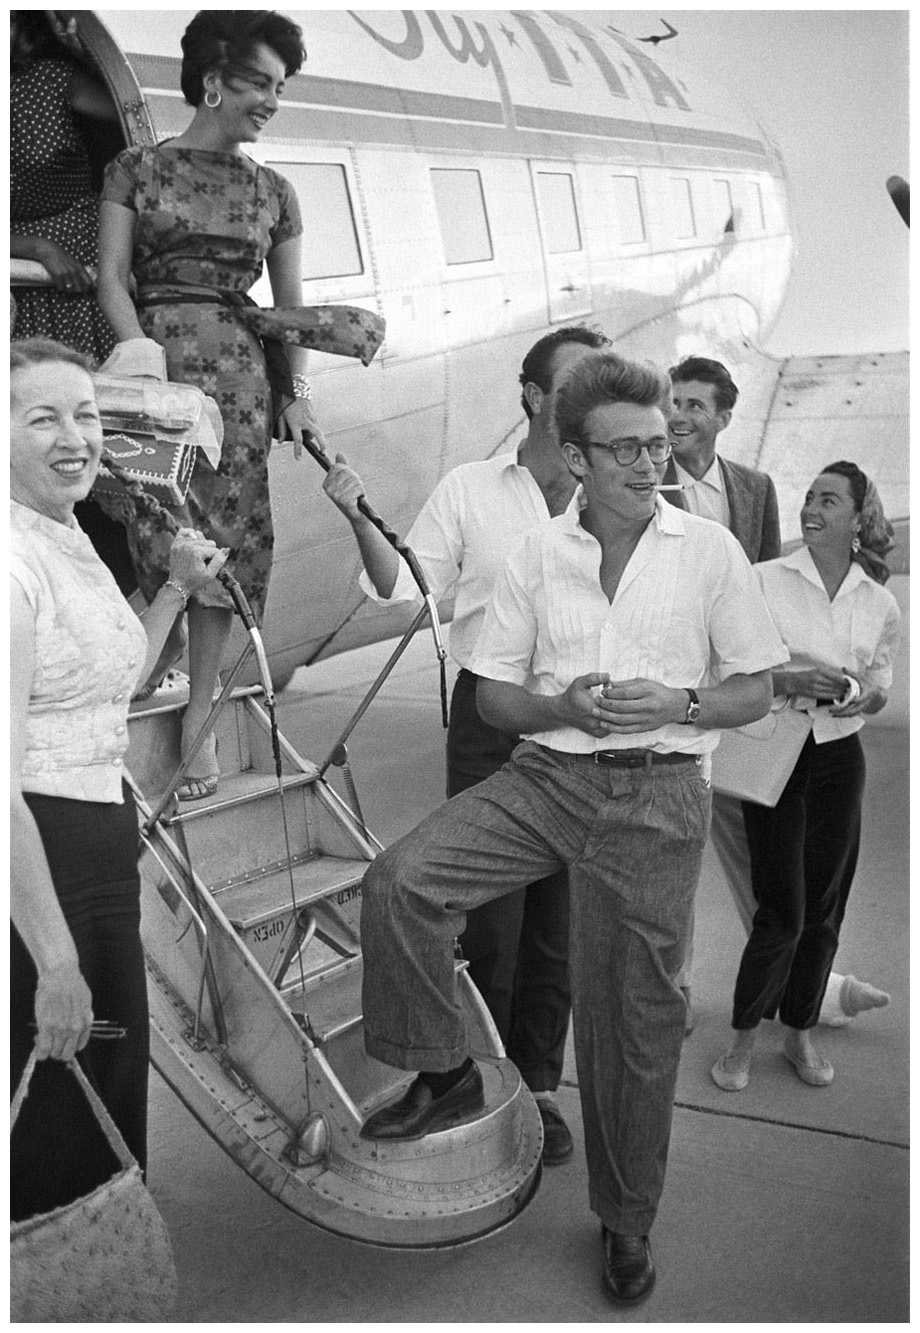 james-dean-and-elizabeth-taylor-board-the-plane-to-texas-photographed-by-richard-miller-1955-life.jpg